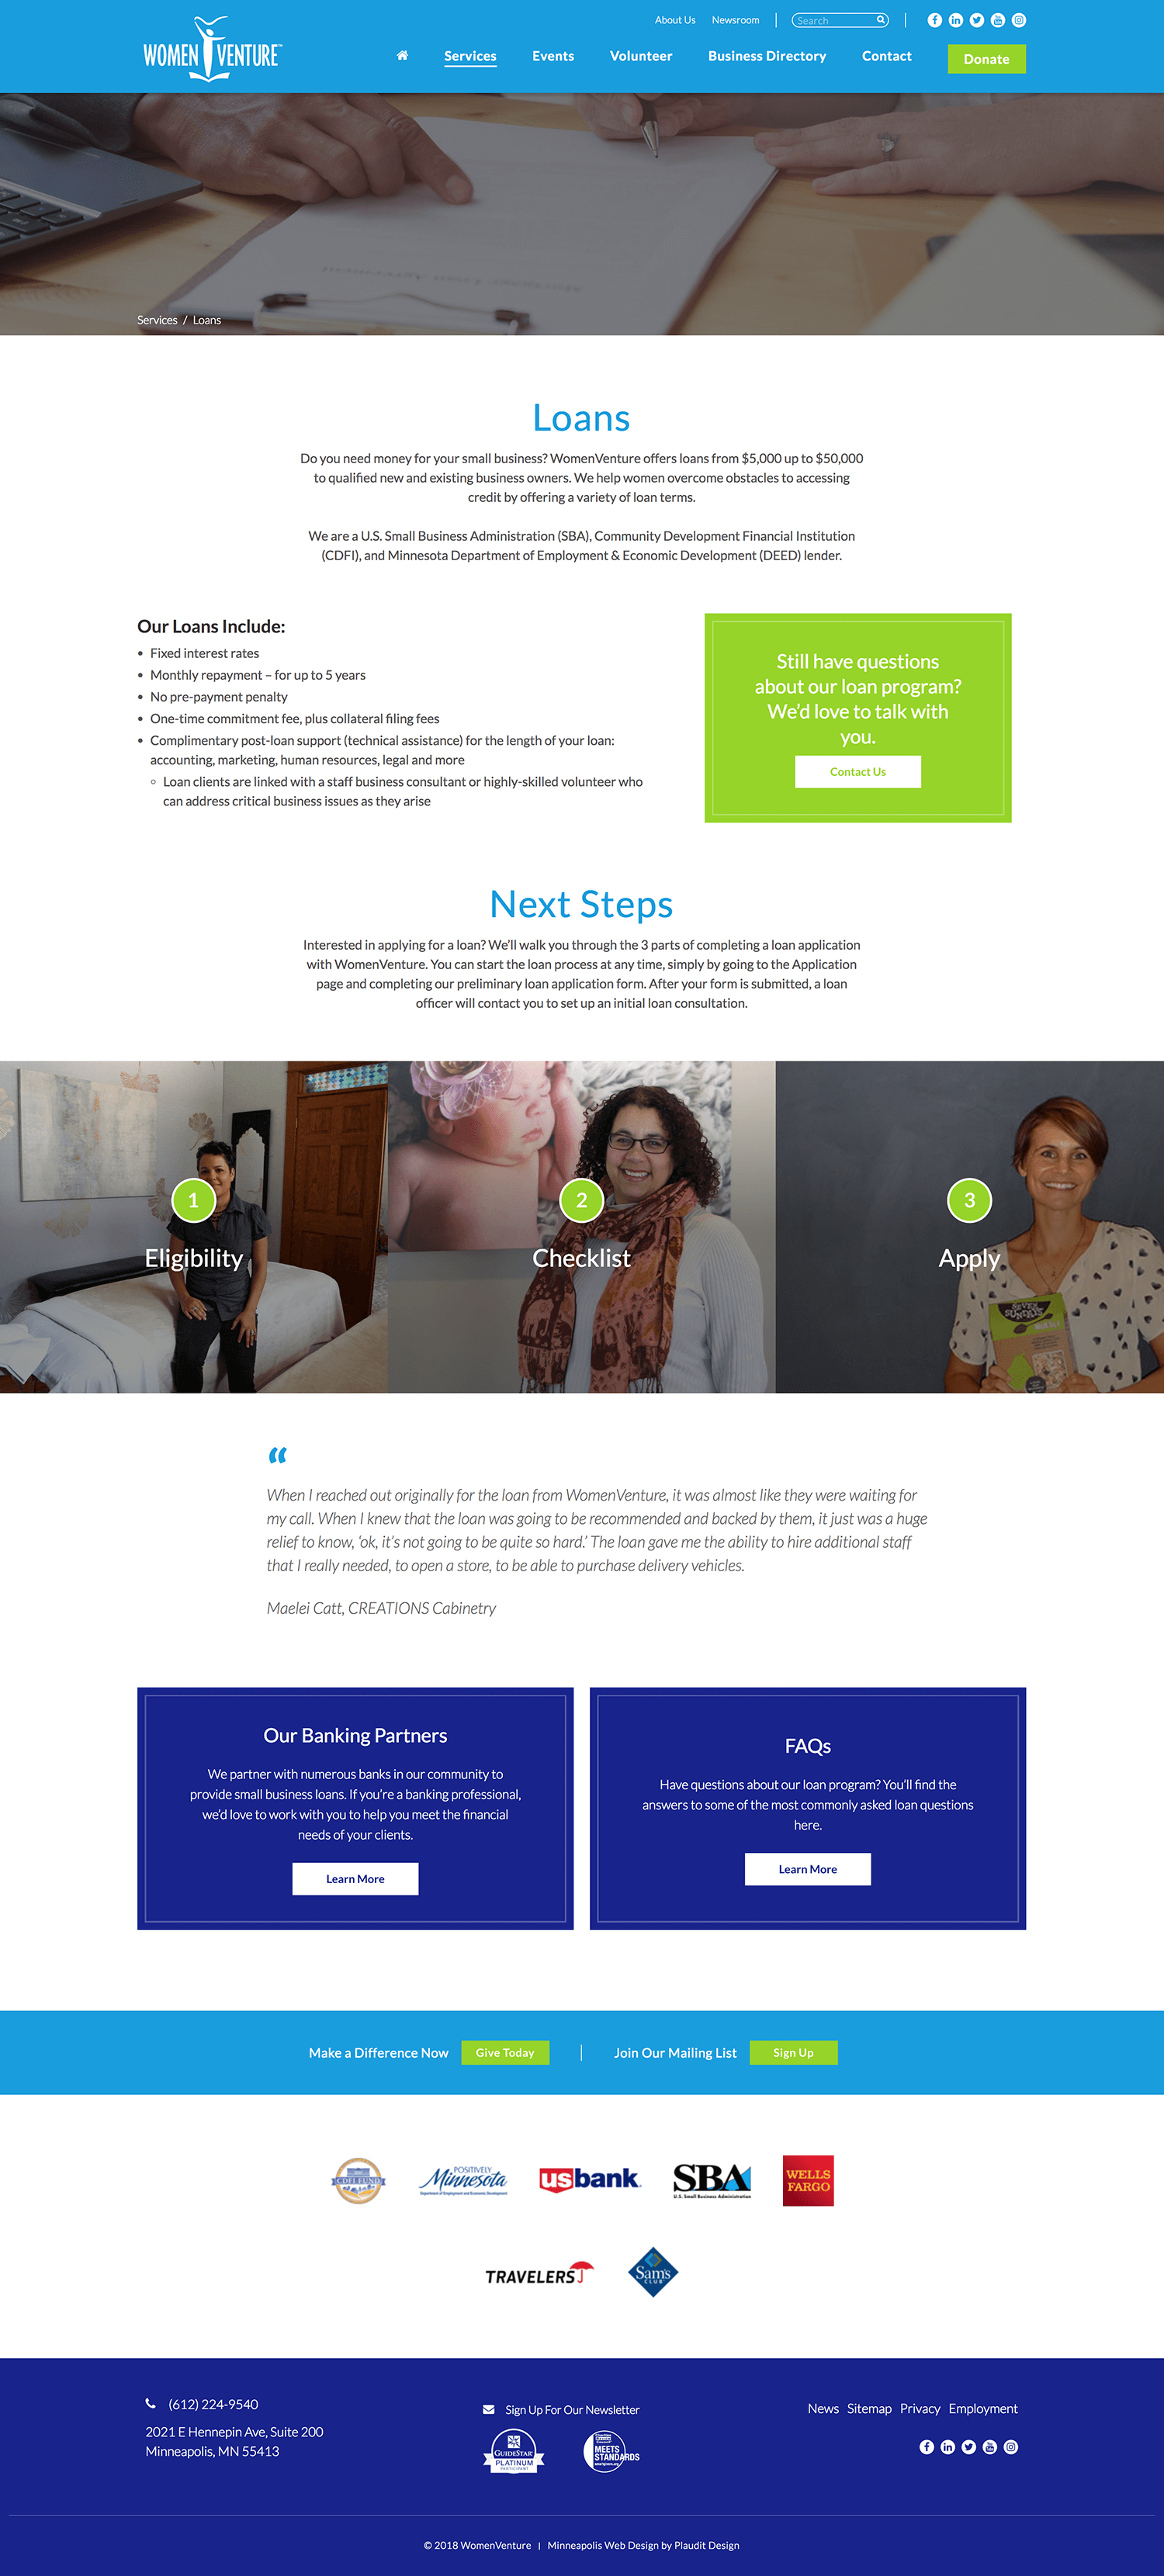 WomenVenture Web Design: Training and Education Pages